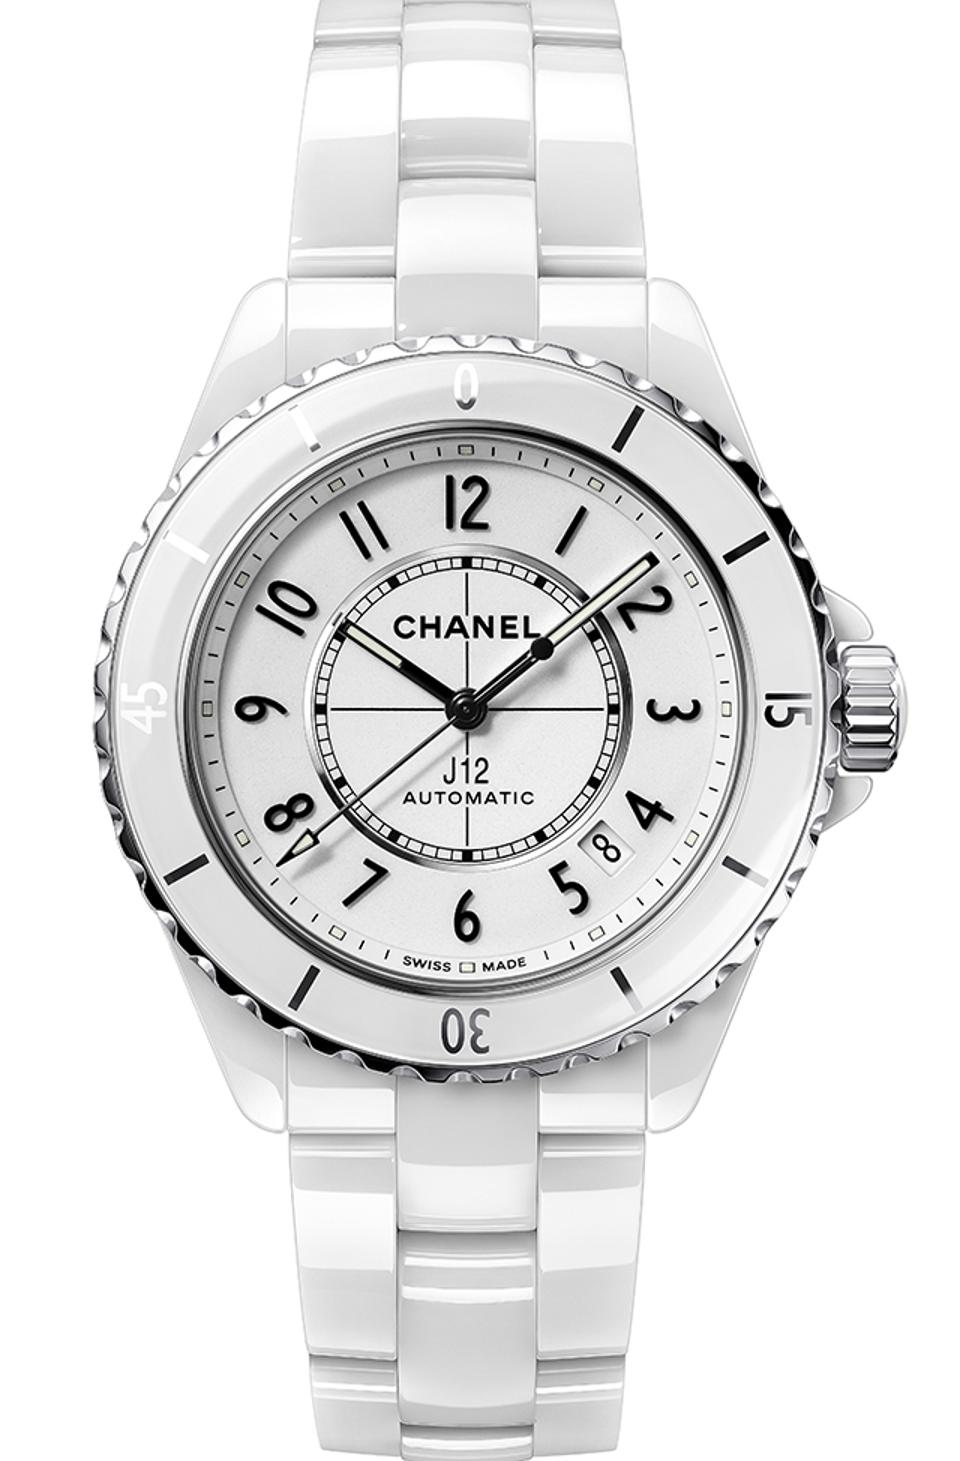 Chanel won the Ladies Watch category for the J12 Caliber 12.1, a redesign of the iconic model first introduced in 1999.